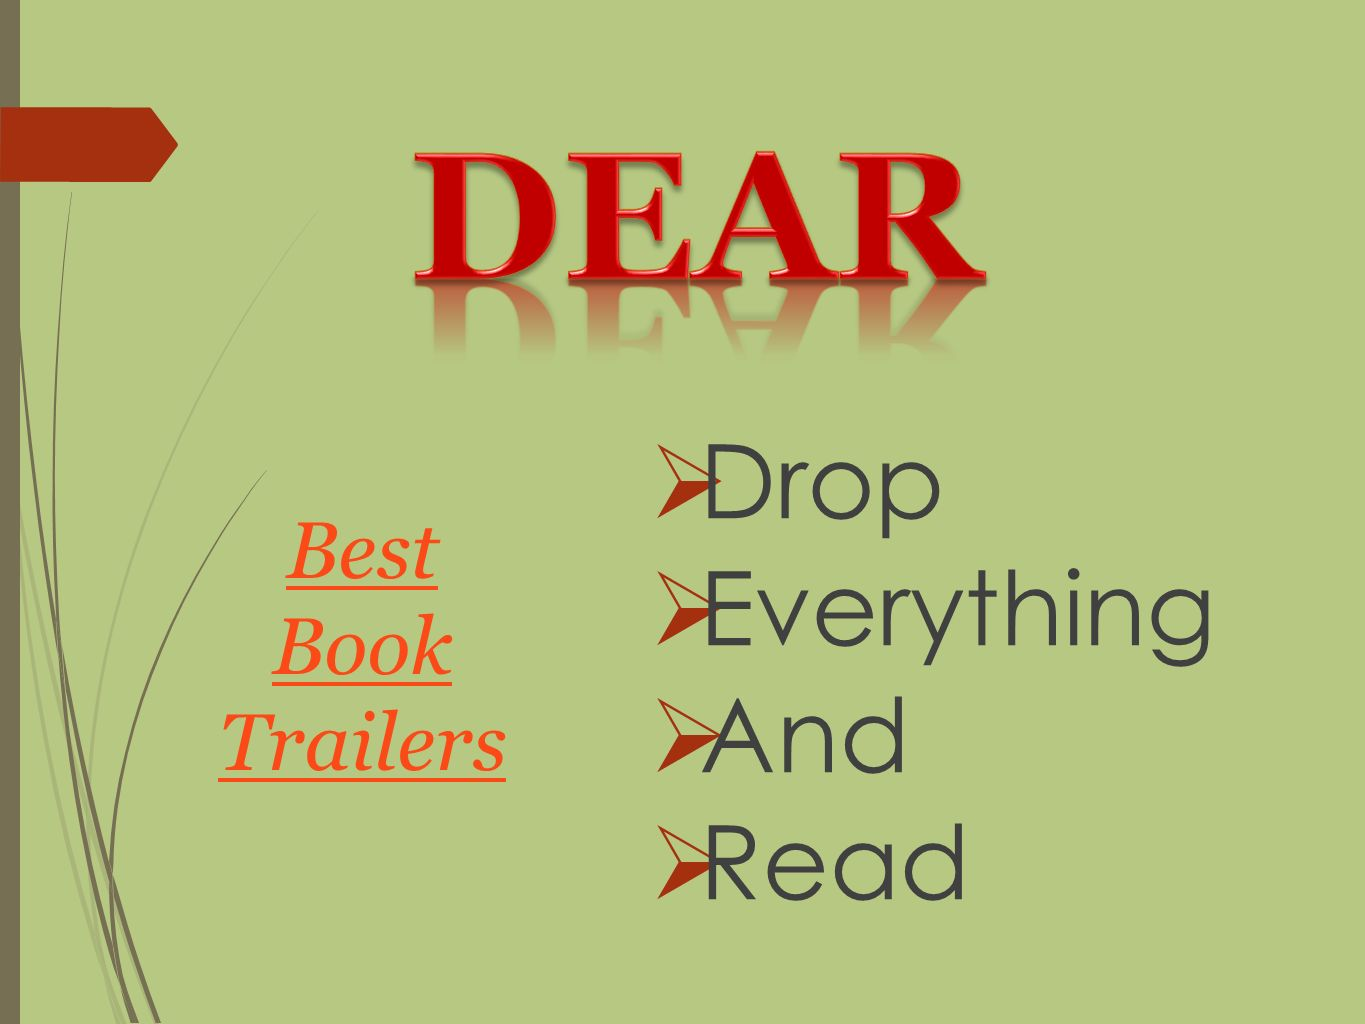  Drop  Everything  And  Read Best Book Trailers